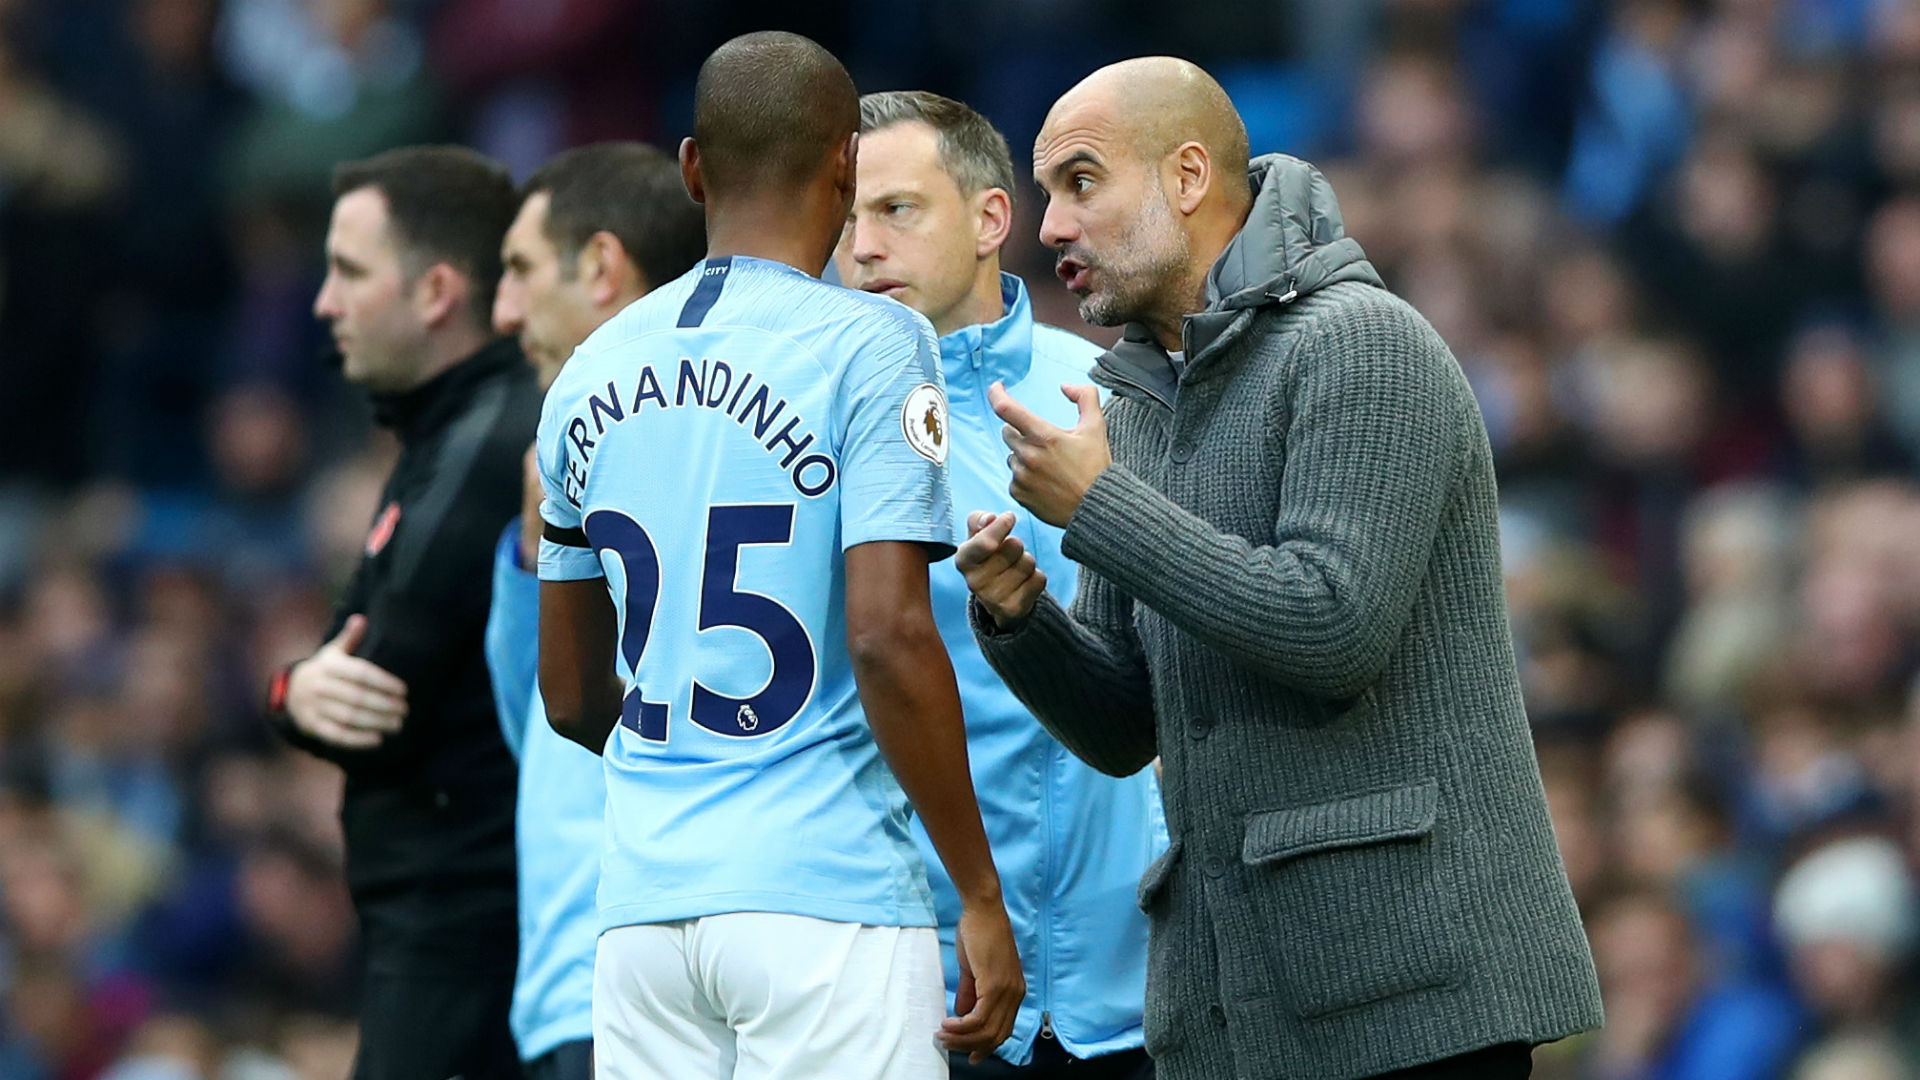 Guardiola confronts Sterling over derby showboating